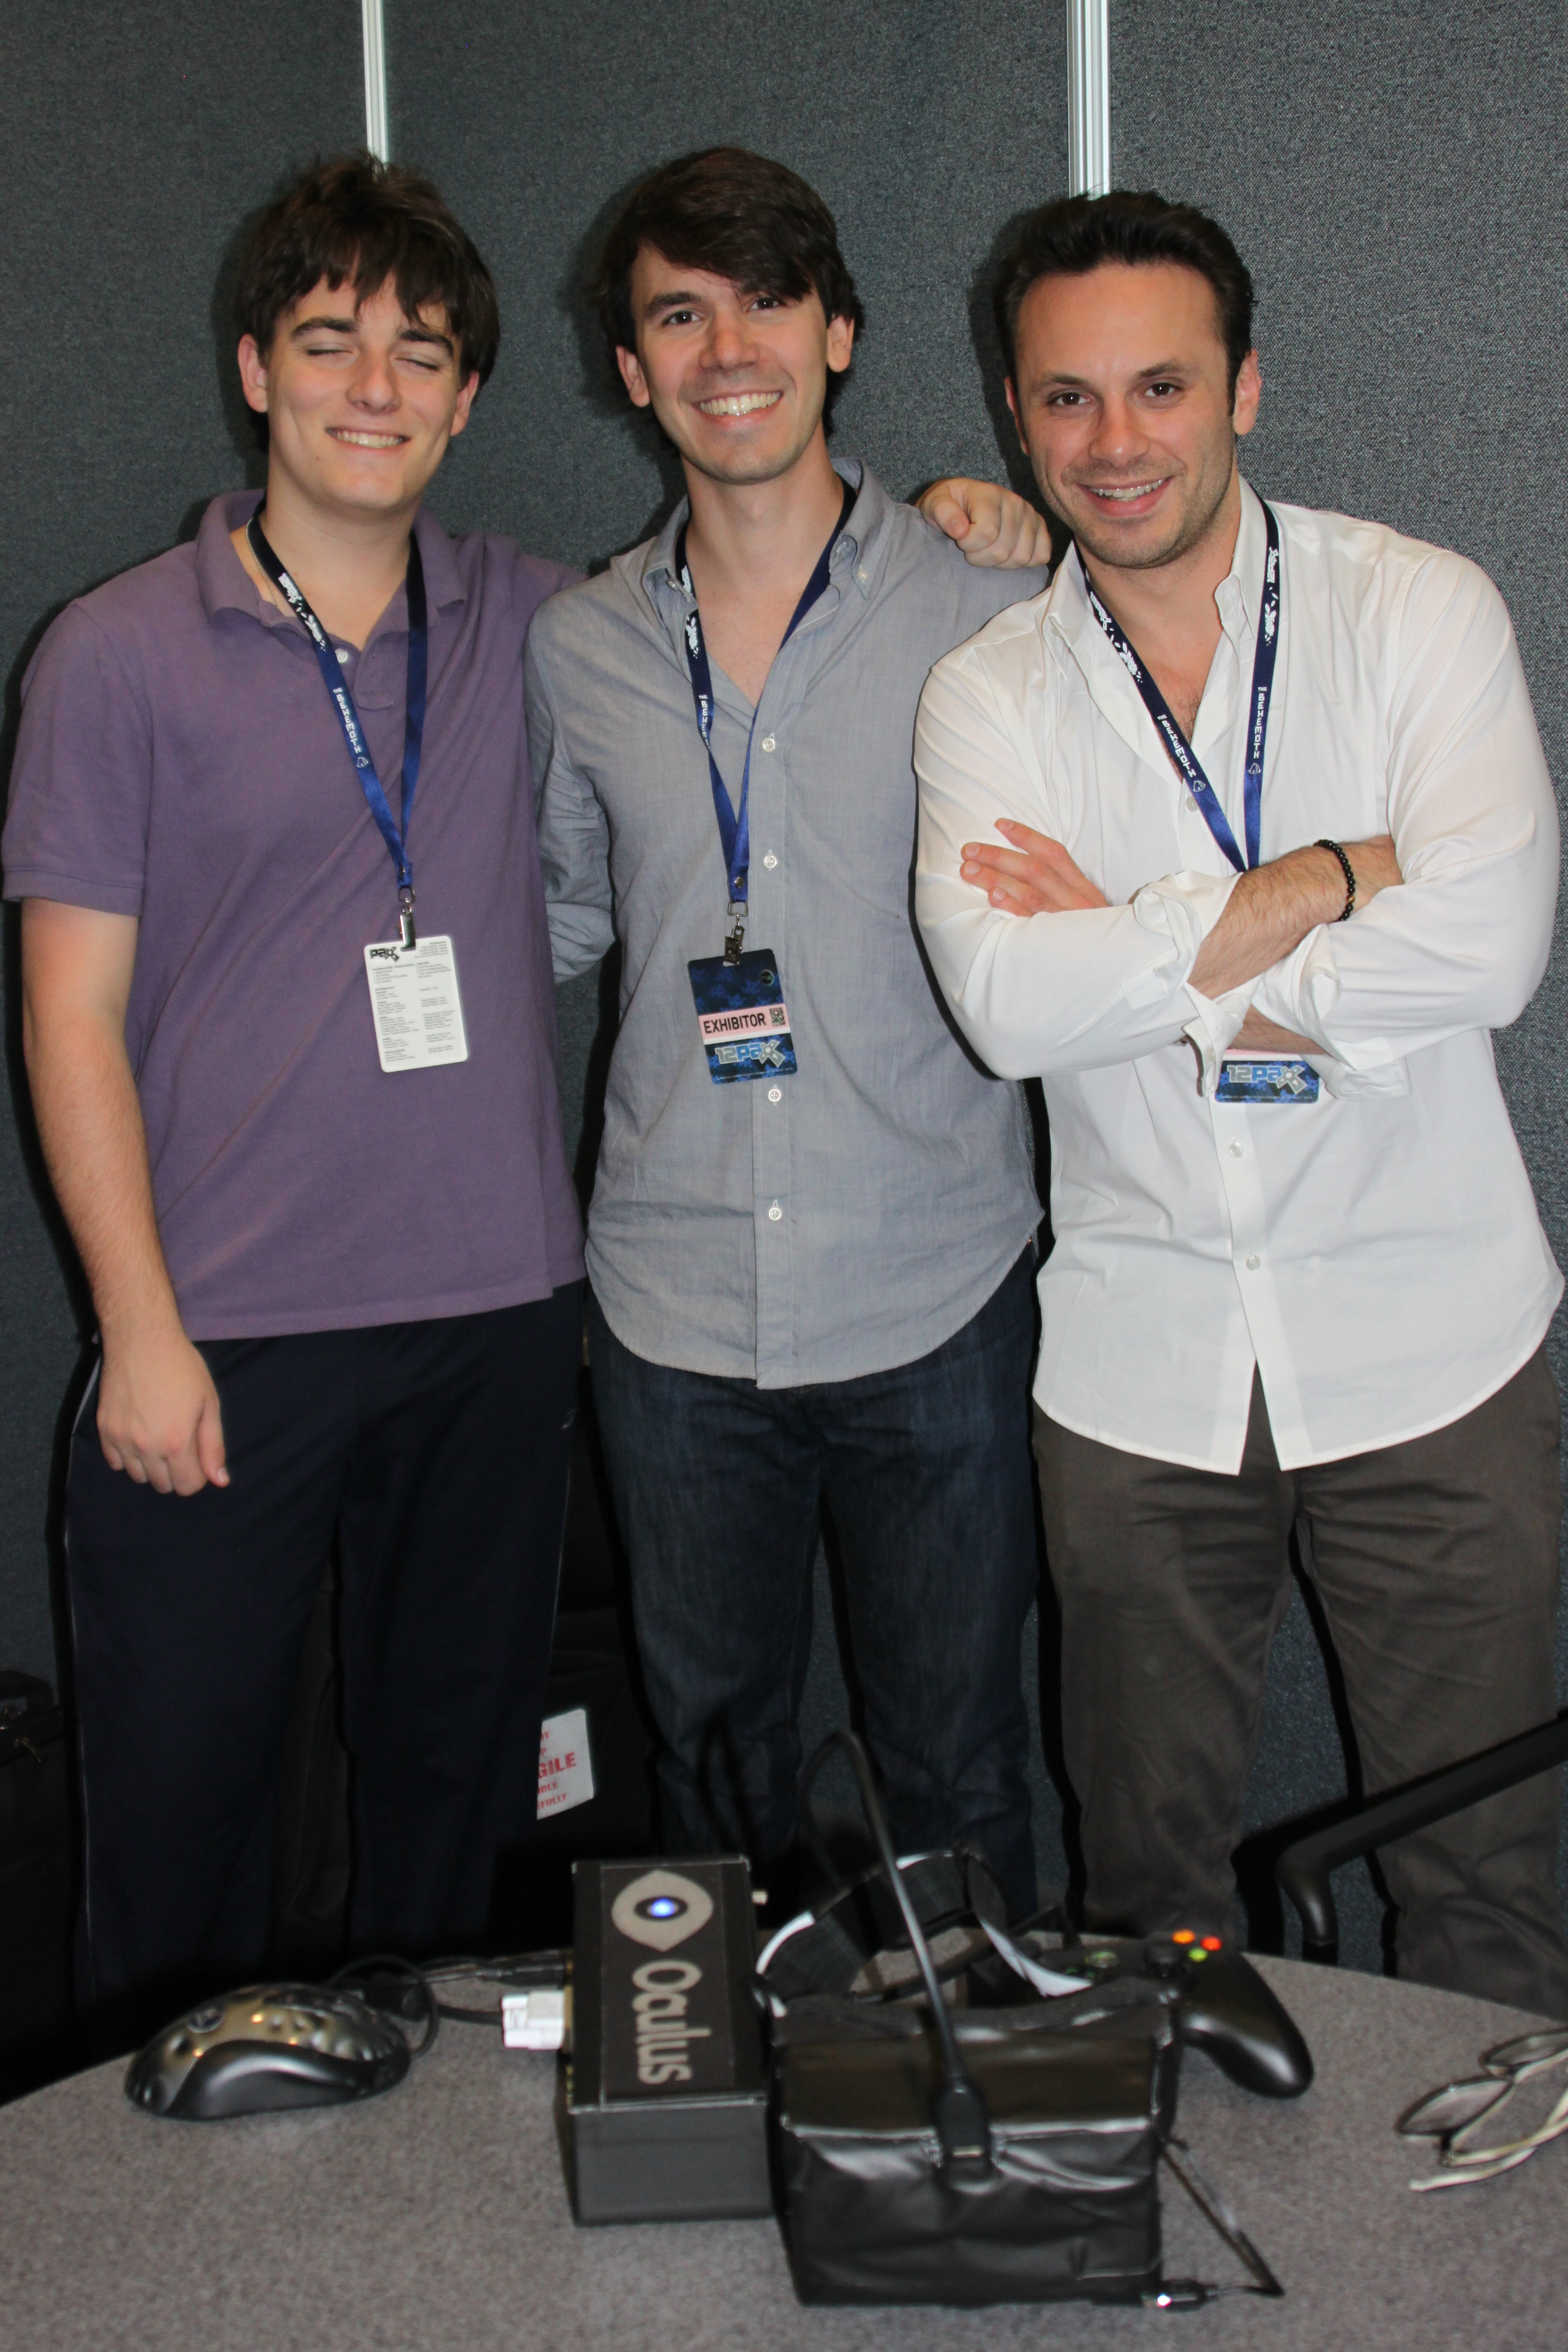 From left to right: Rift creator Palmer Luckey, VP of product Nate Mitchell, and CEO Brenden Iribe